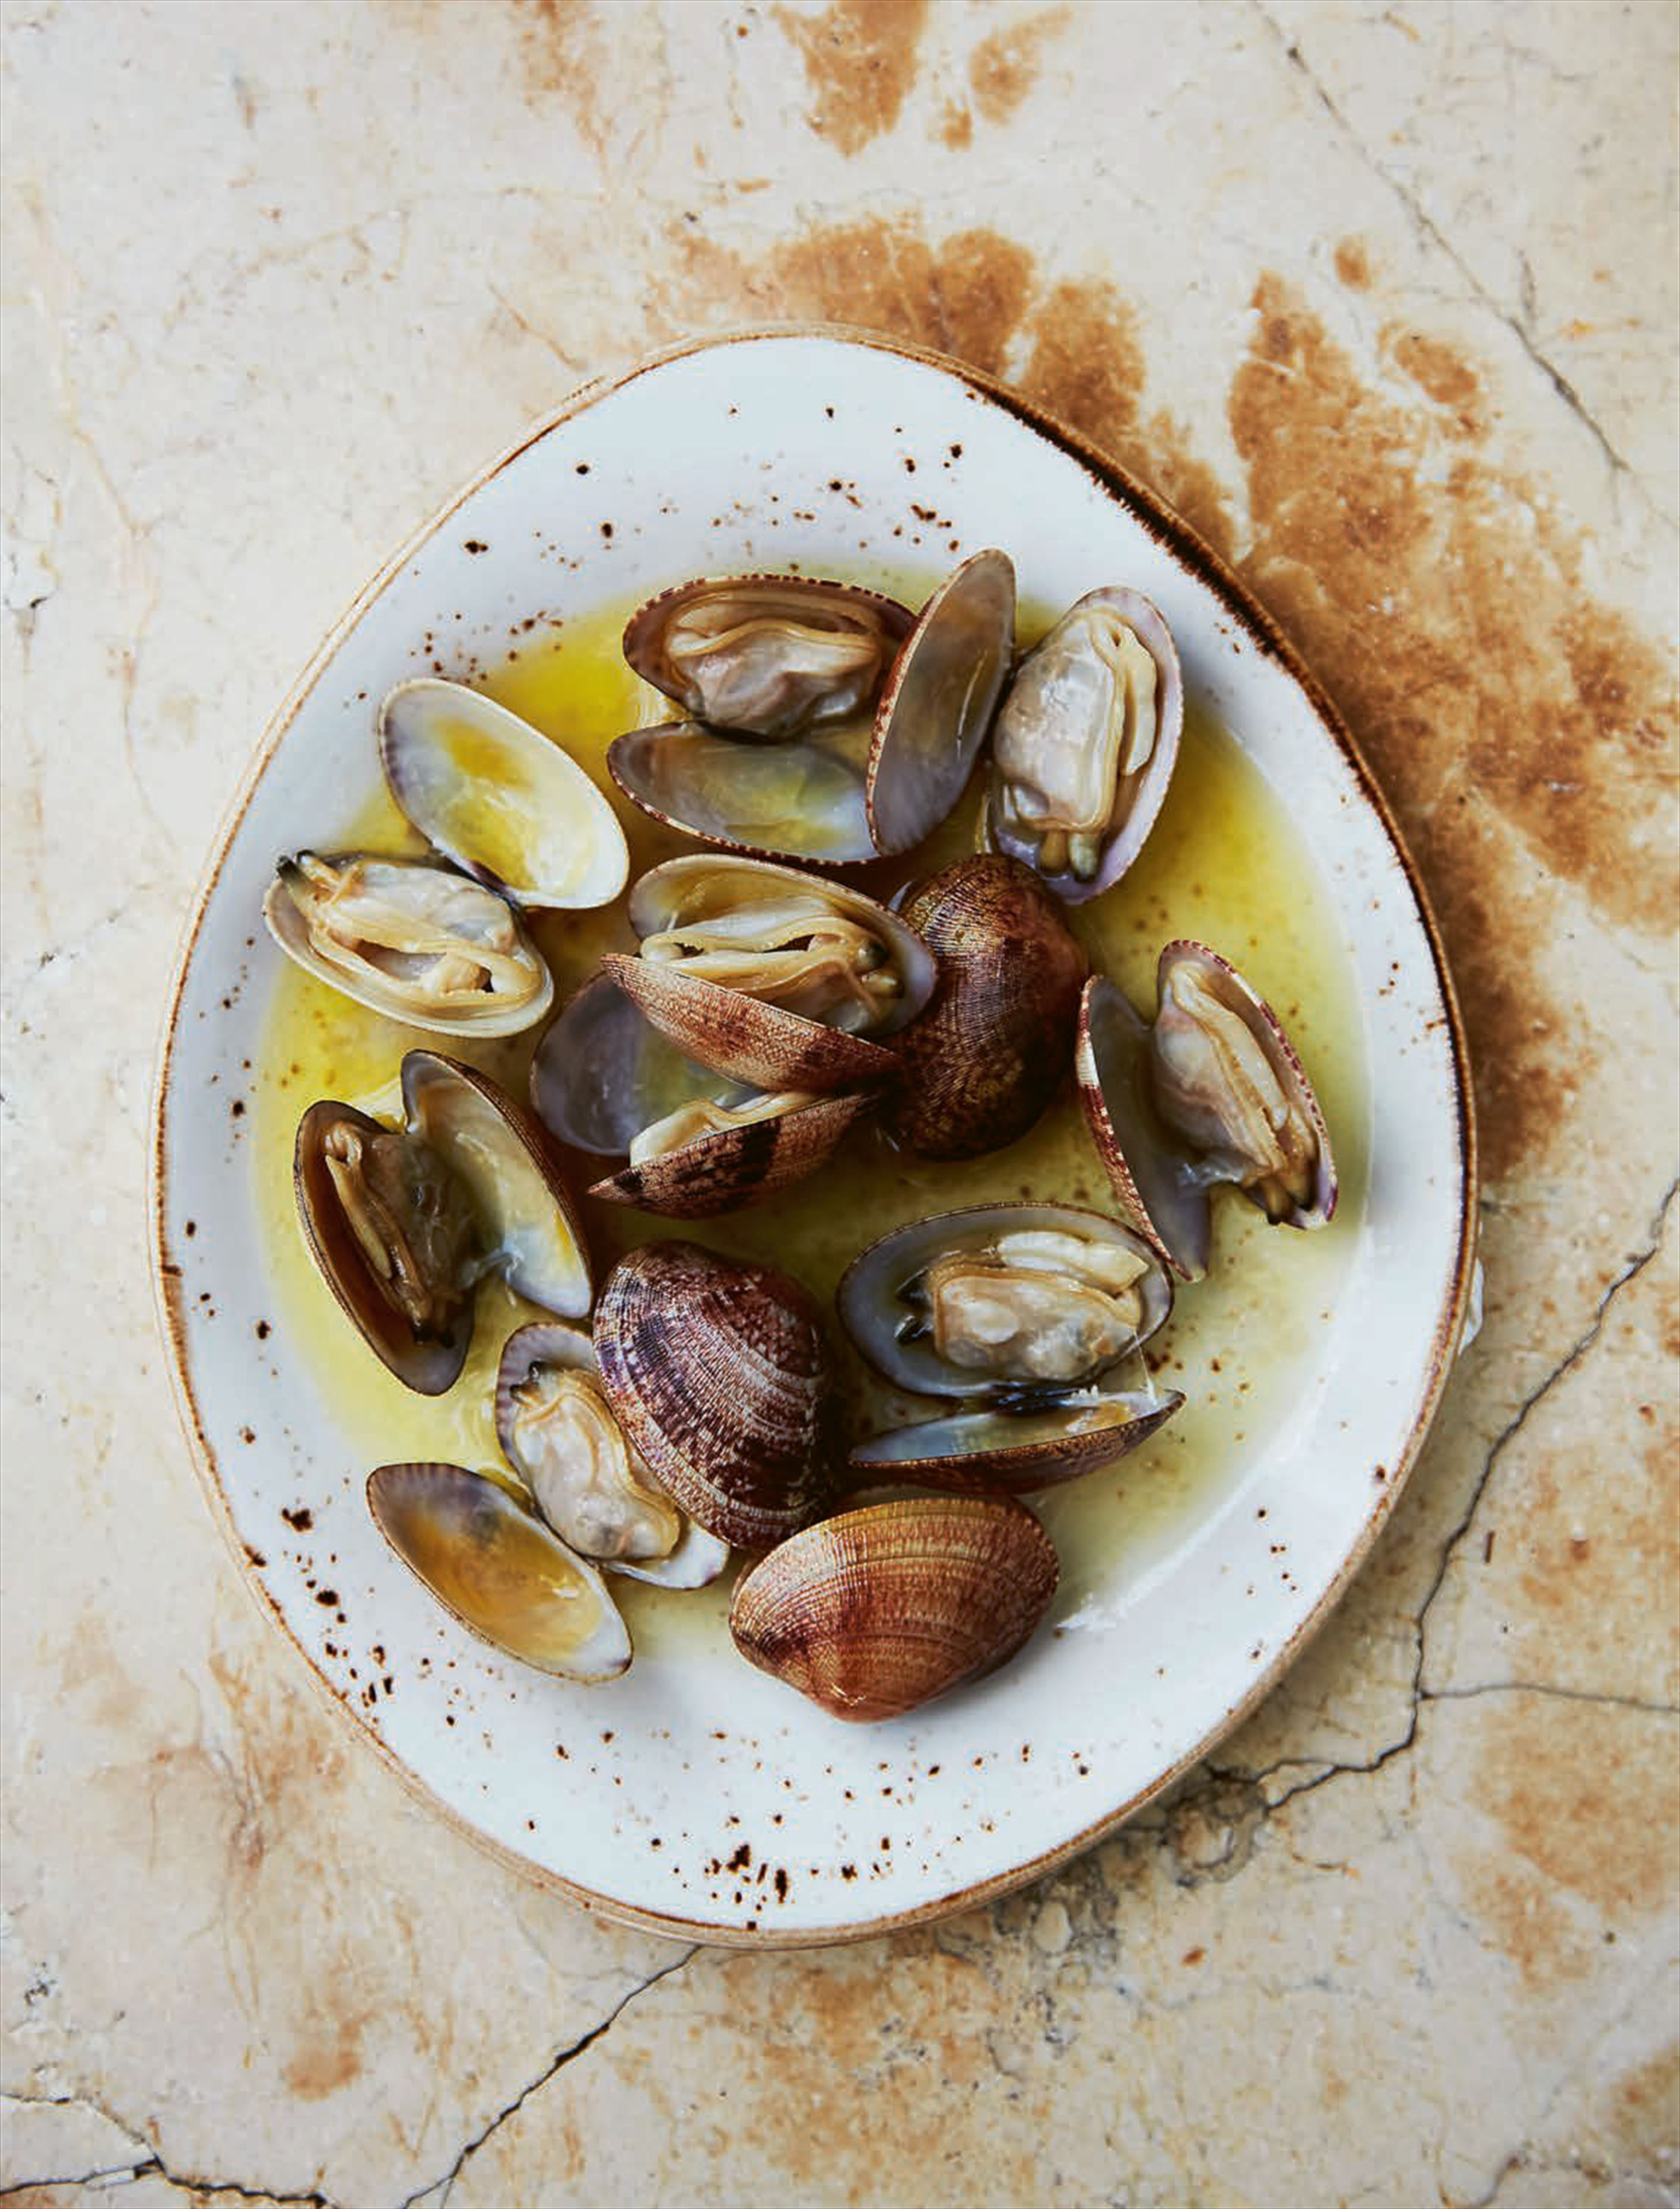 Clams 'a la plancha' with olive oil